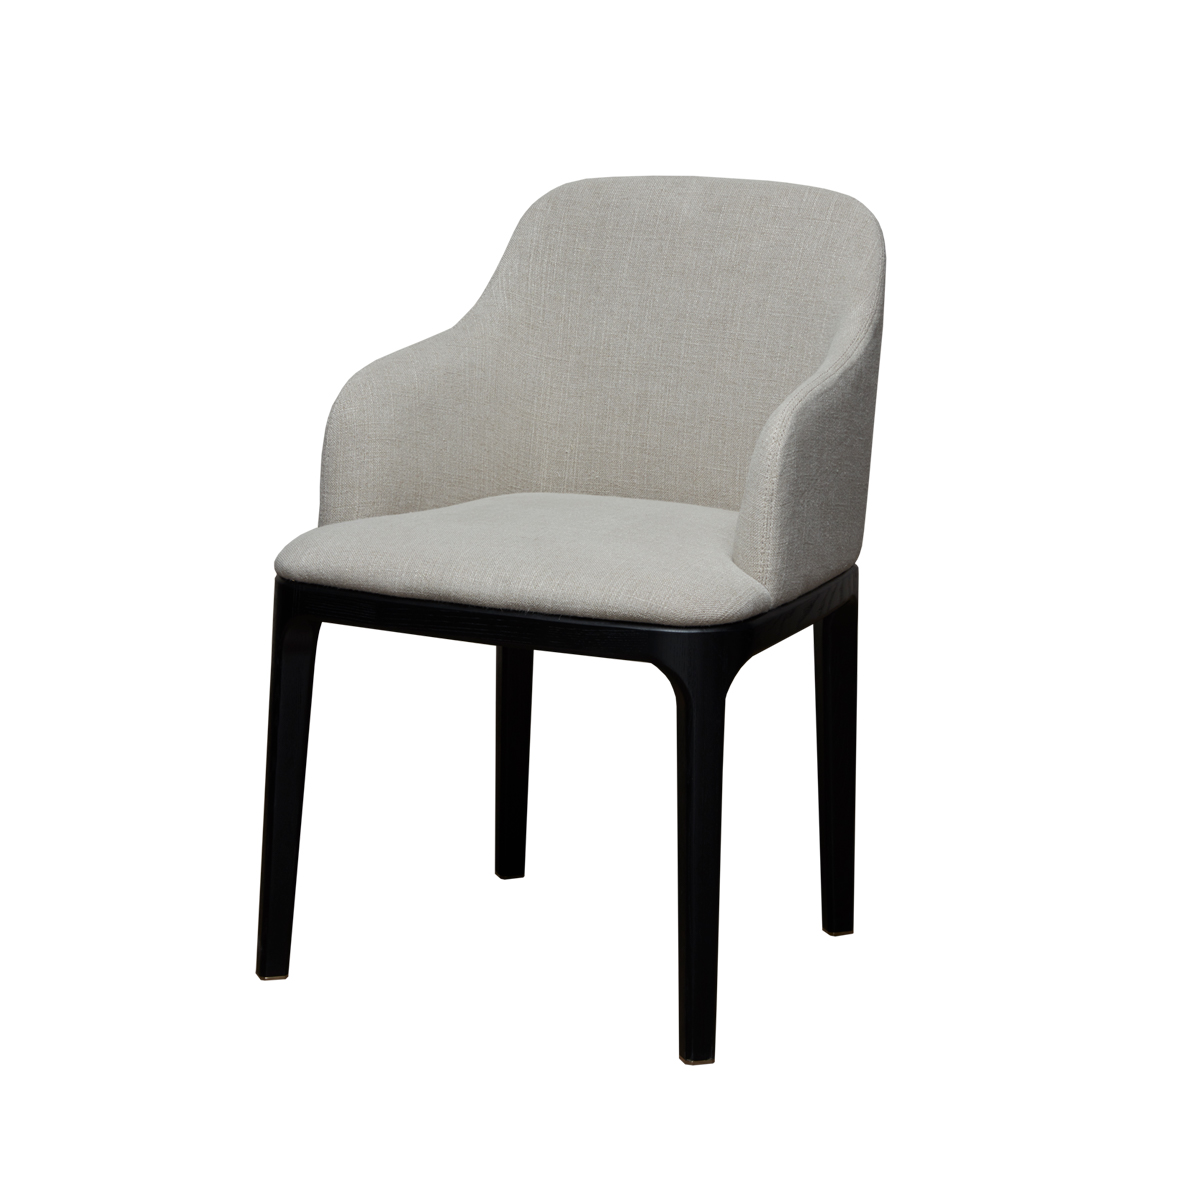 Gemma Dining Chair X – Papyrus